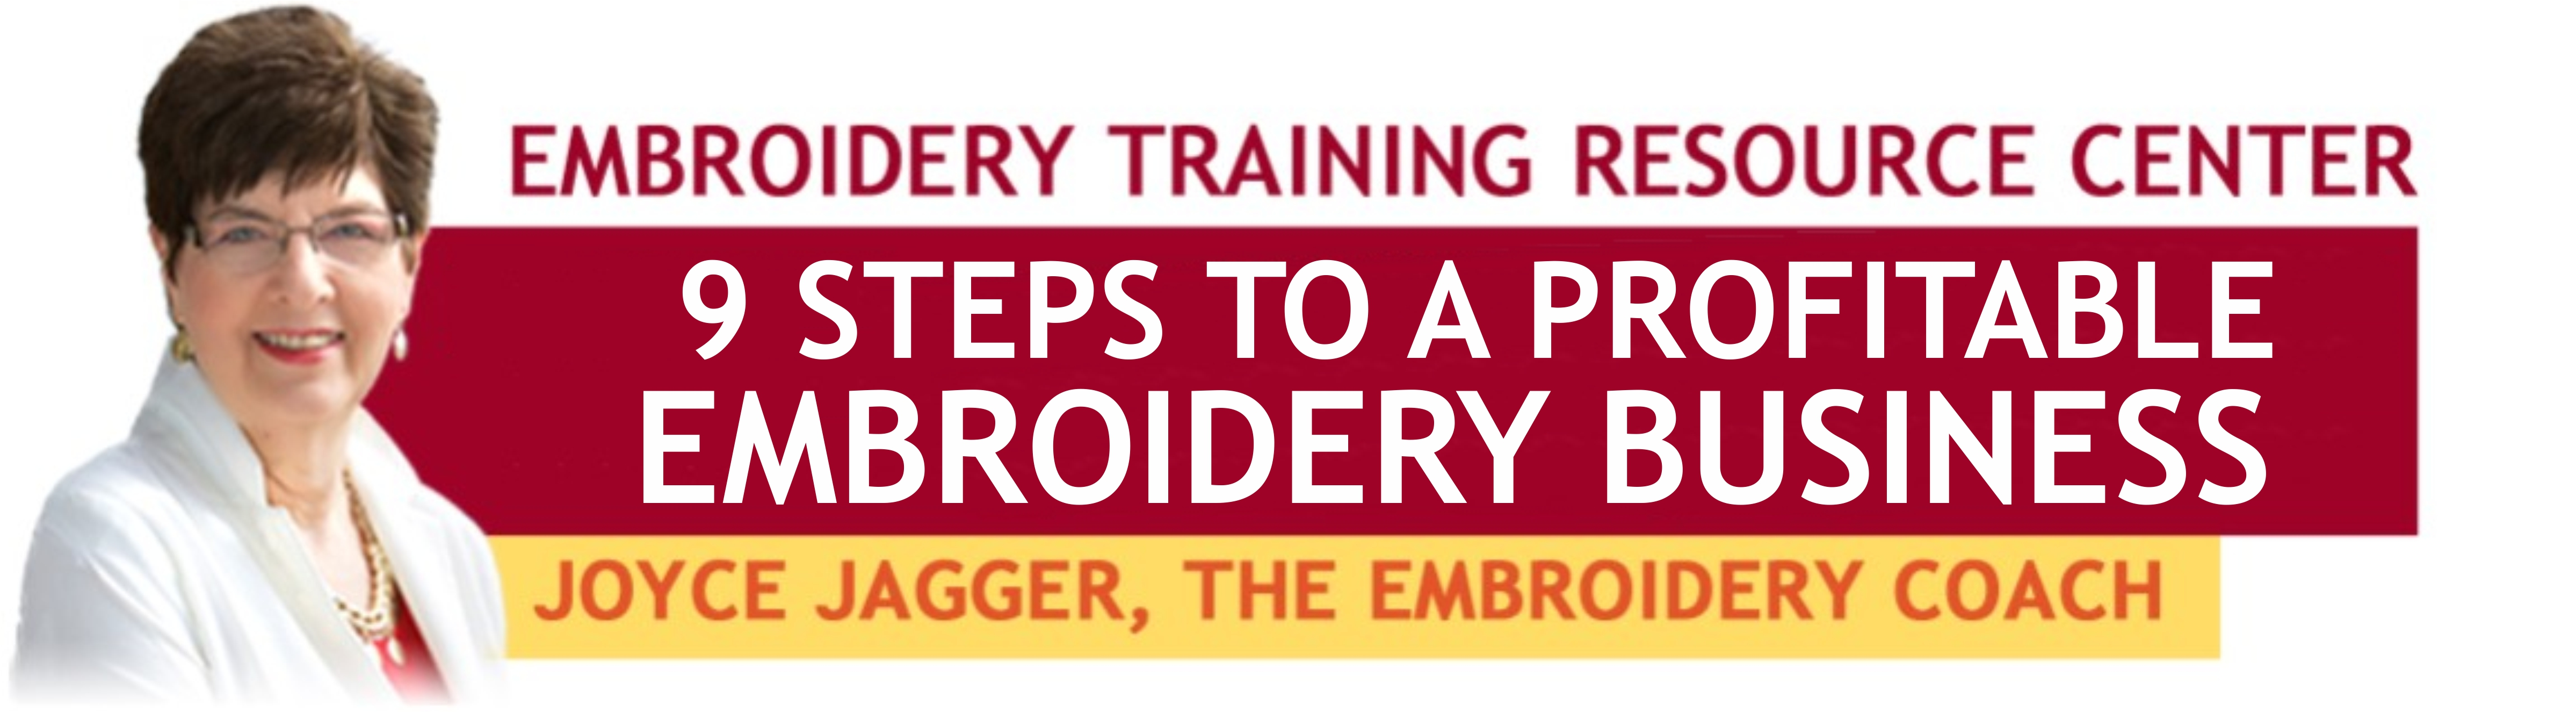 9 Steps To A Profitable Embroidery Business